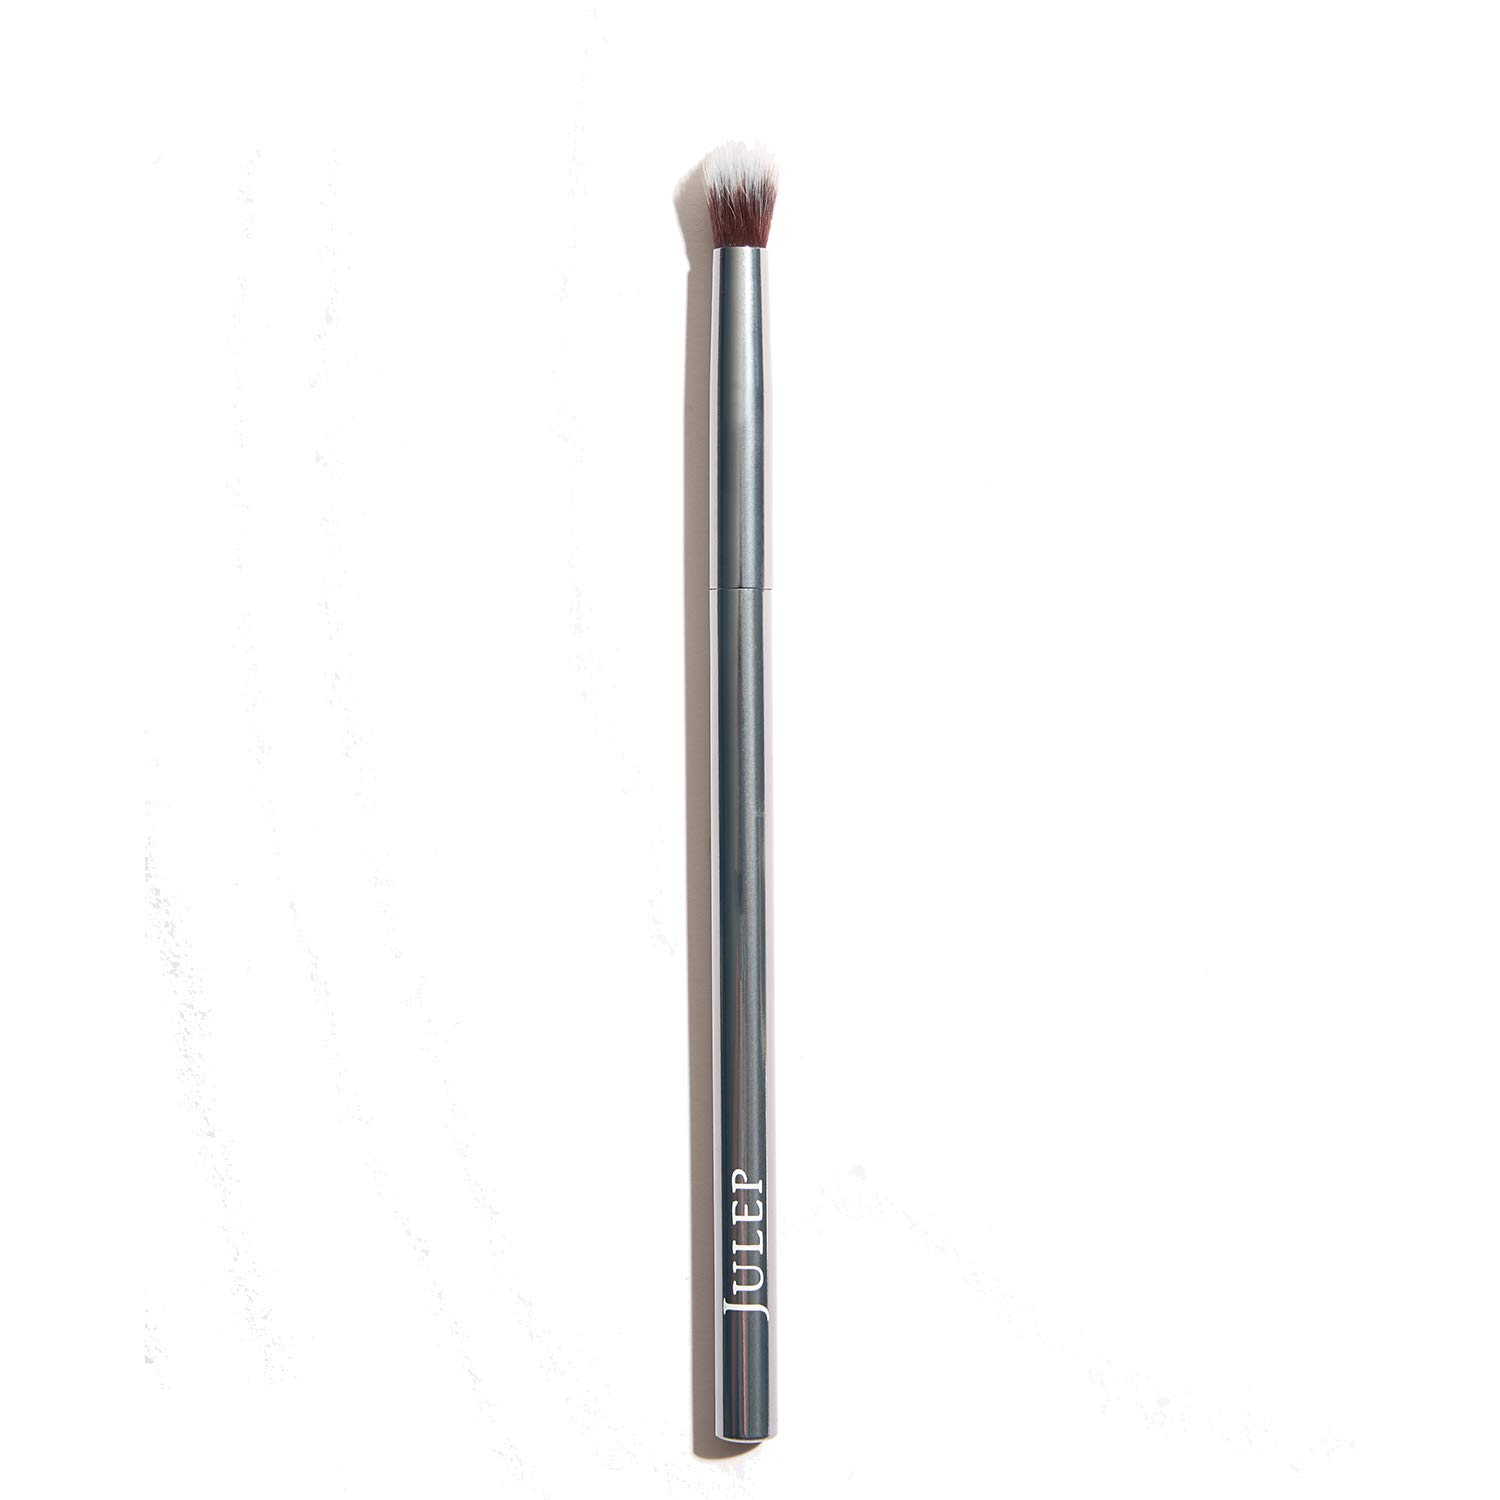 Rapid rise Julep With the Right Blending Crease Brush Tools Max 86% OFF